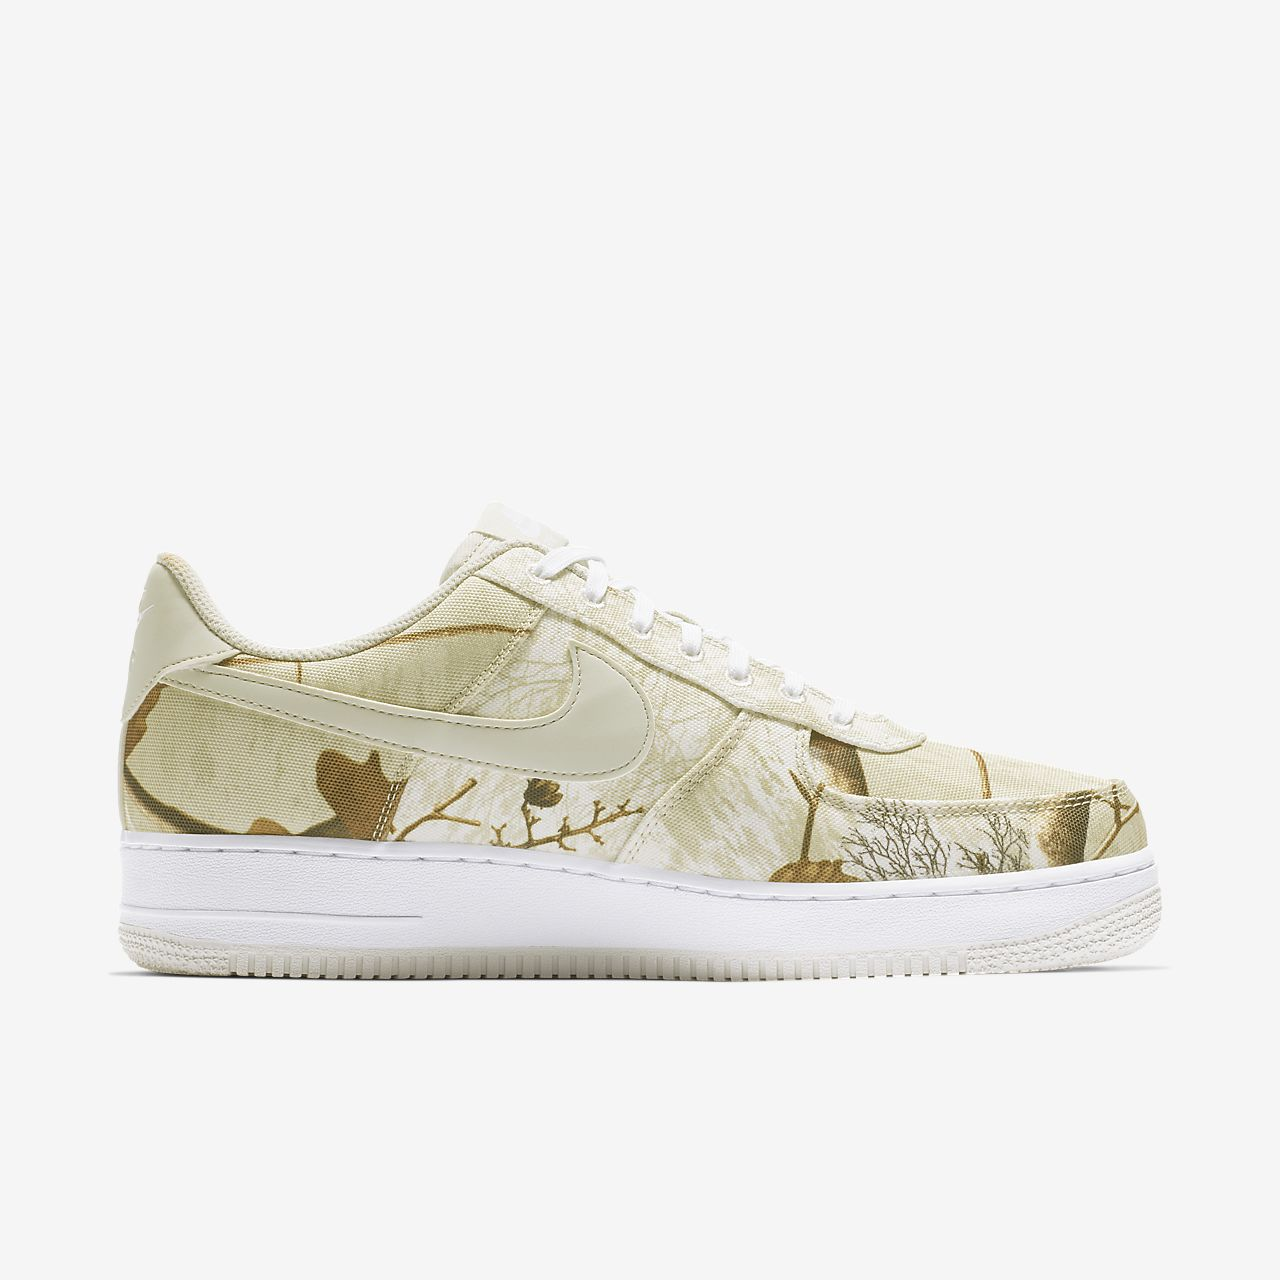 Tenis Nike Air Force 1 '07 LV8 3 Realtree® Masculino Branco/Luz | Pt-33277